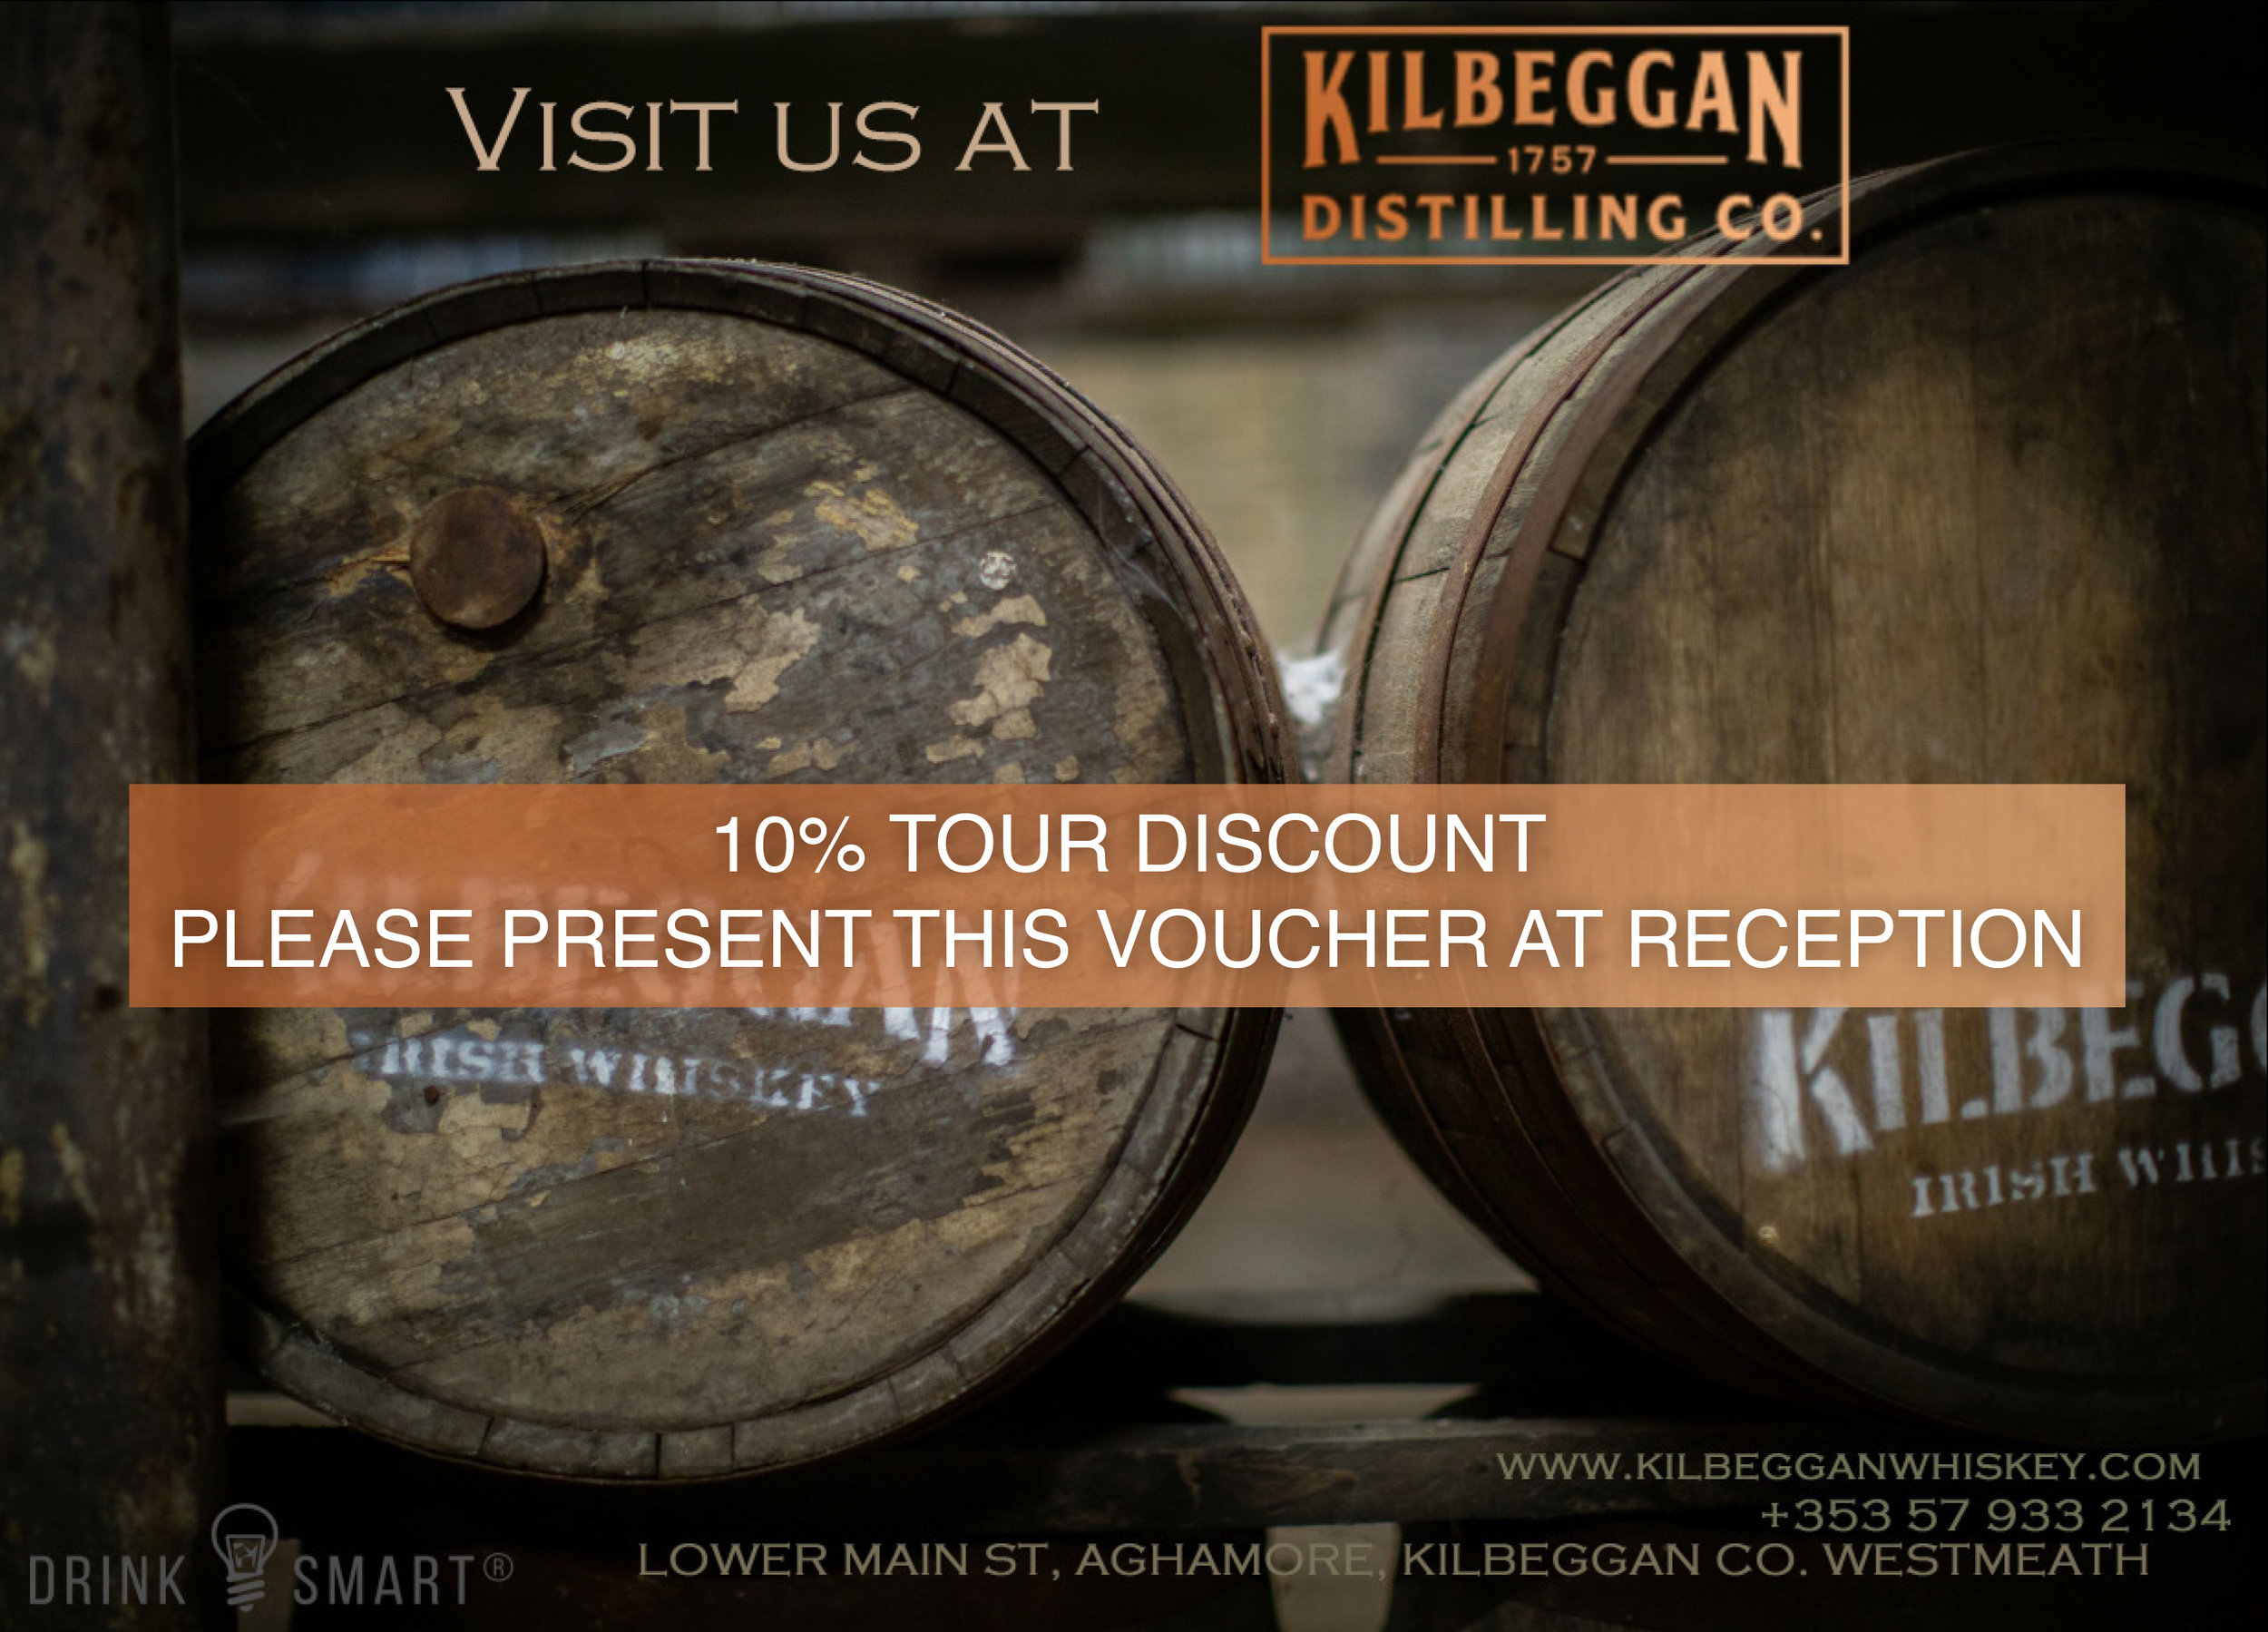 Kilbeggan Distillery is the oldest licenced distillery in Ireland and the most awarded Irish distiller.ENJOY A10% discount on TOURS WHEN YOU PRESENT THIS VOUCHER. -